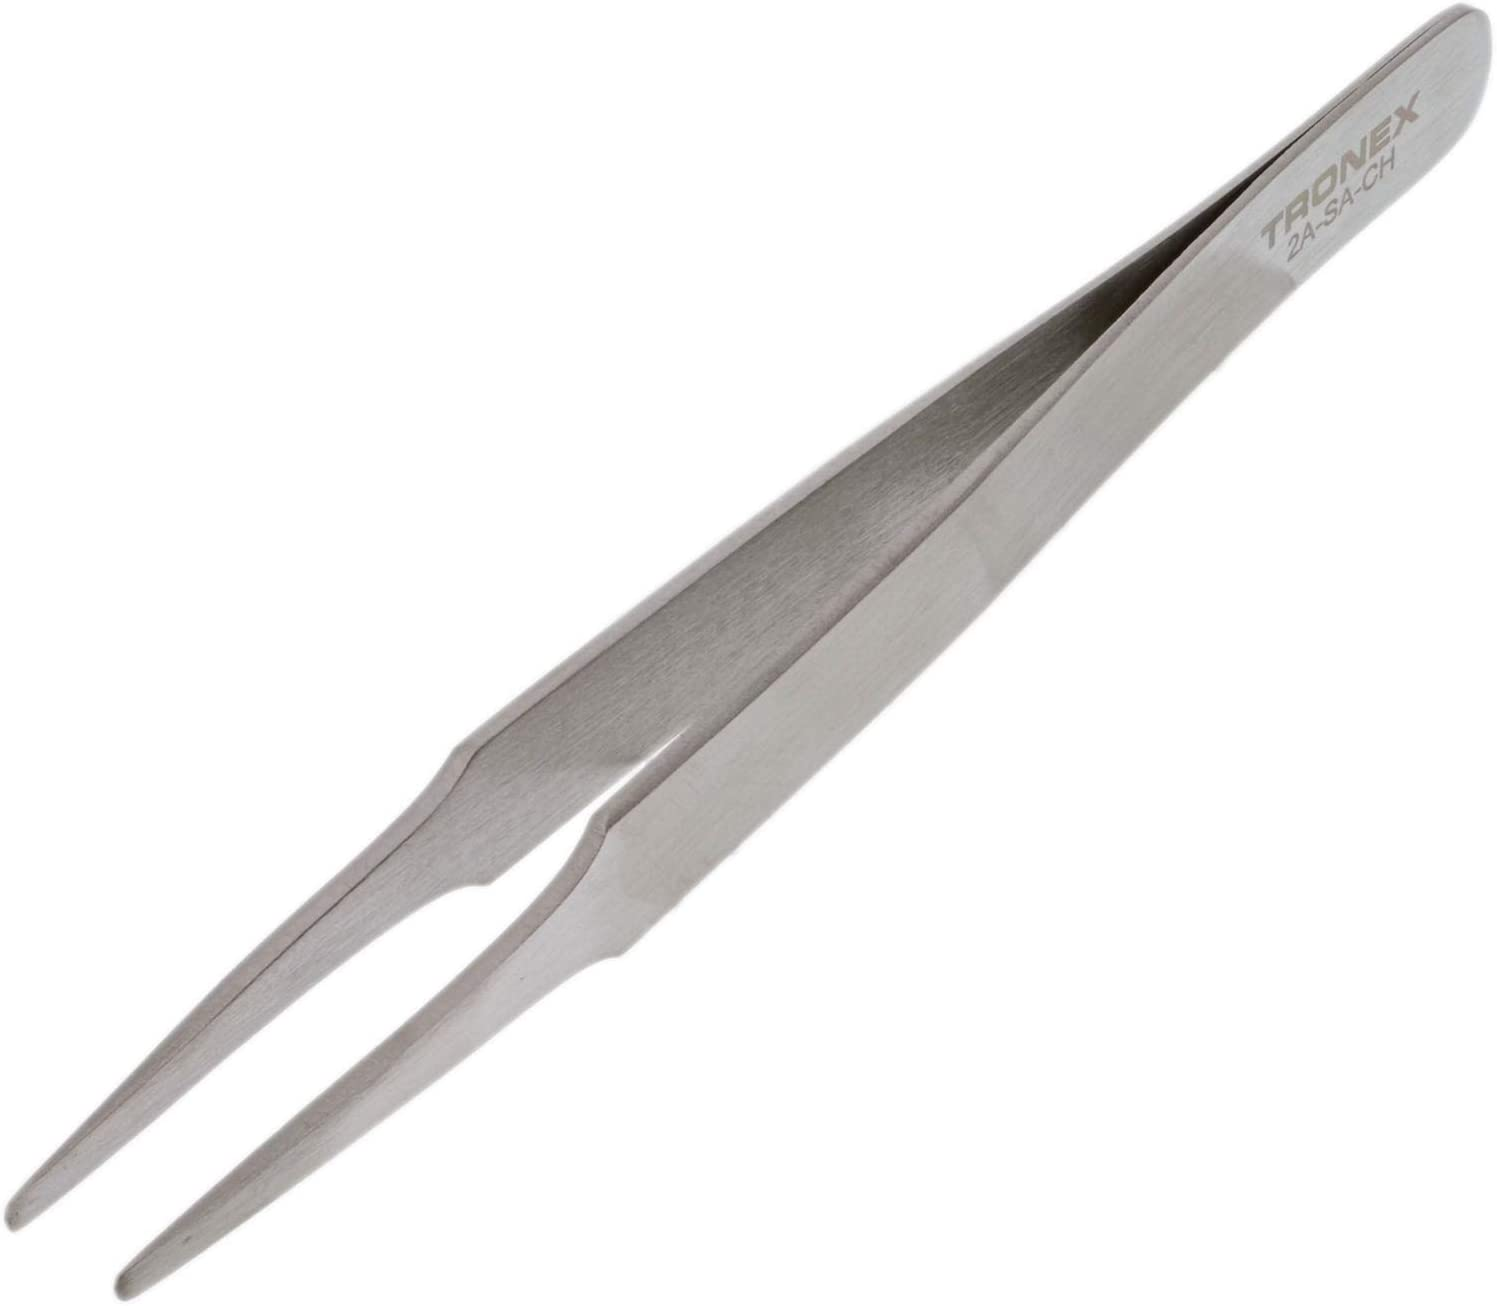 Tweezers – Tronex 2A SS Max 80% OFF Blunt Tips Tapered Brand Cheap Sale Venue • Straight